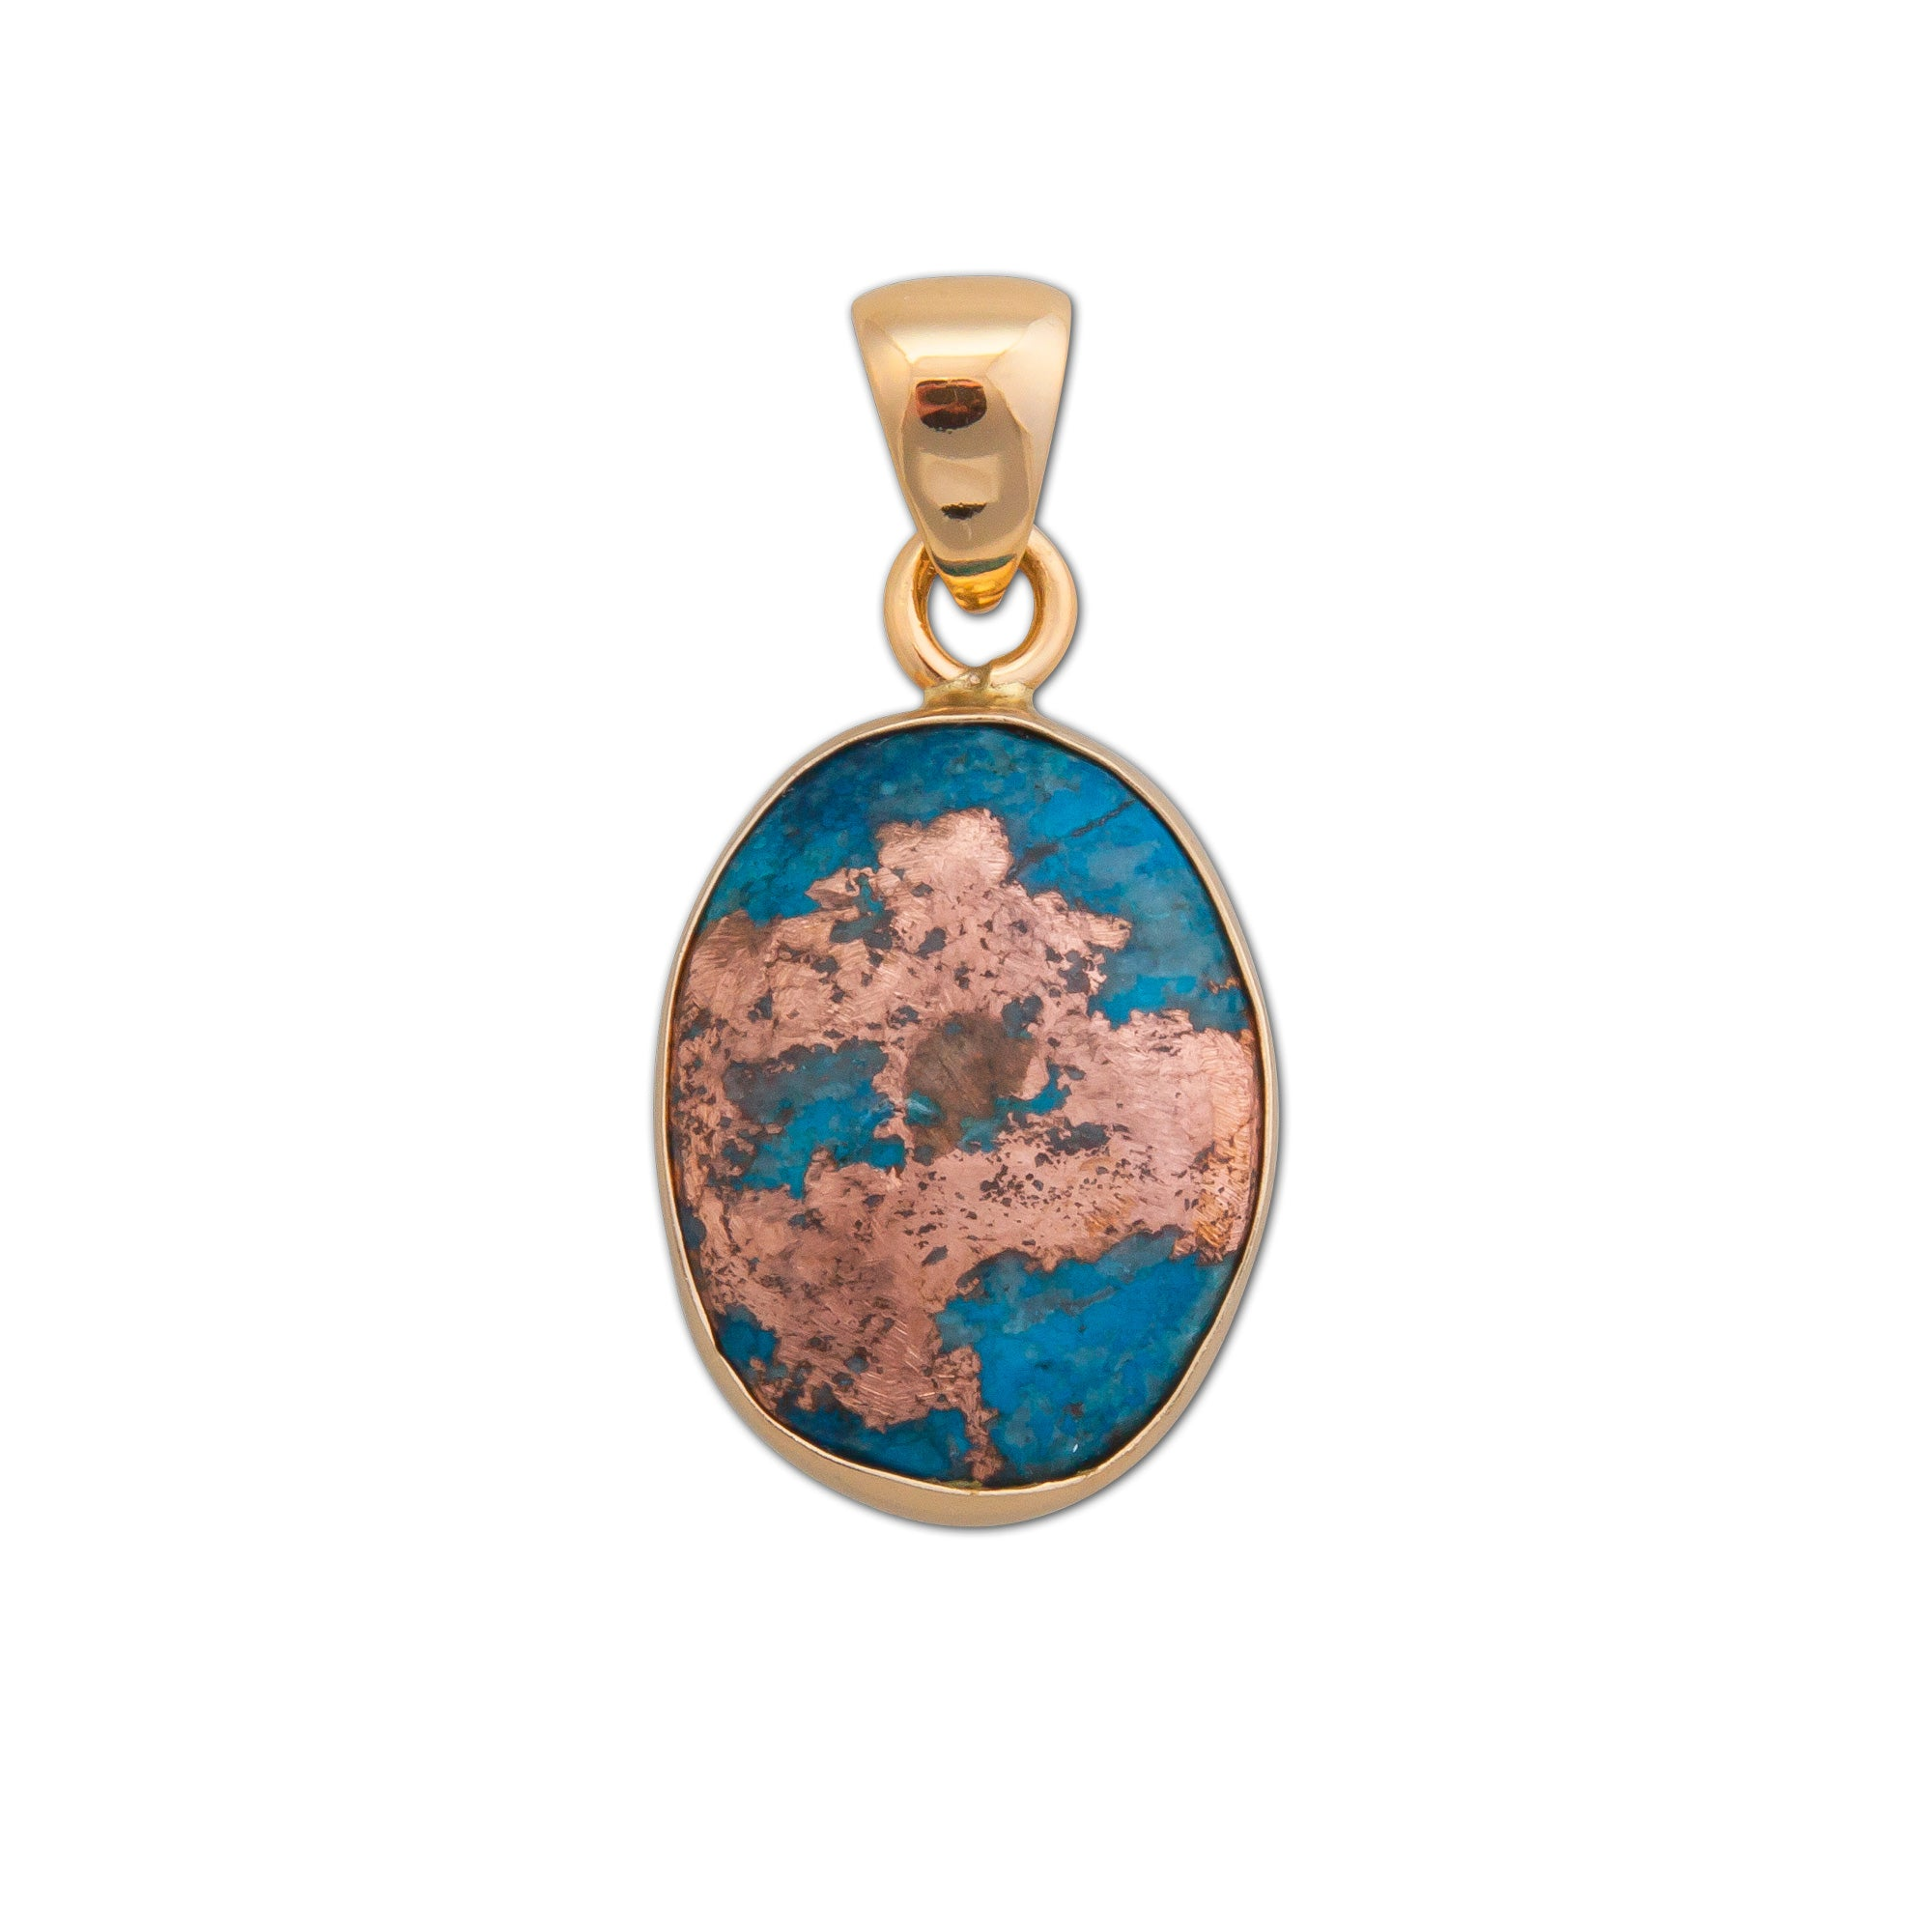 Alchemia Alunite with Copper Pendant | Charles Albert Jewelry